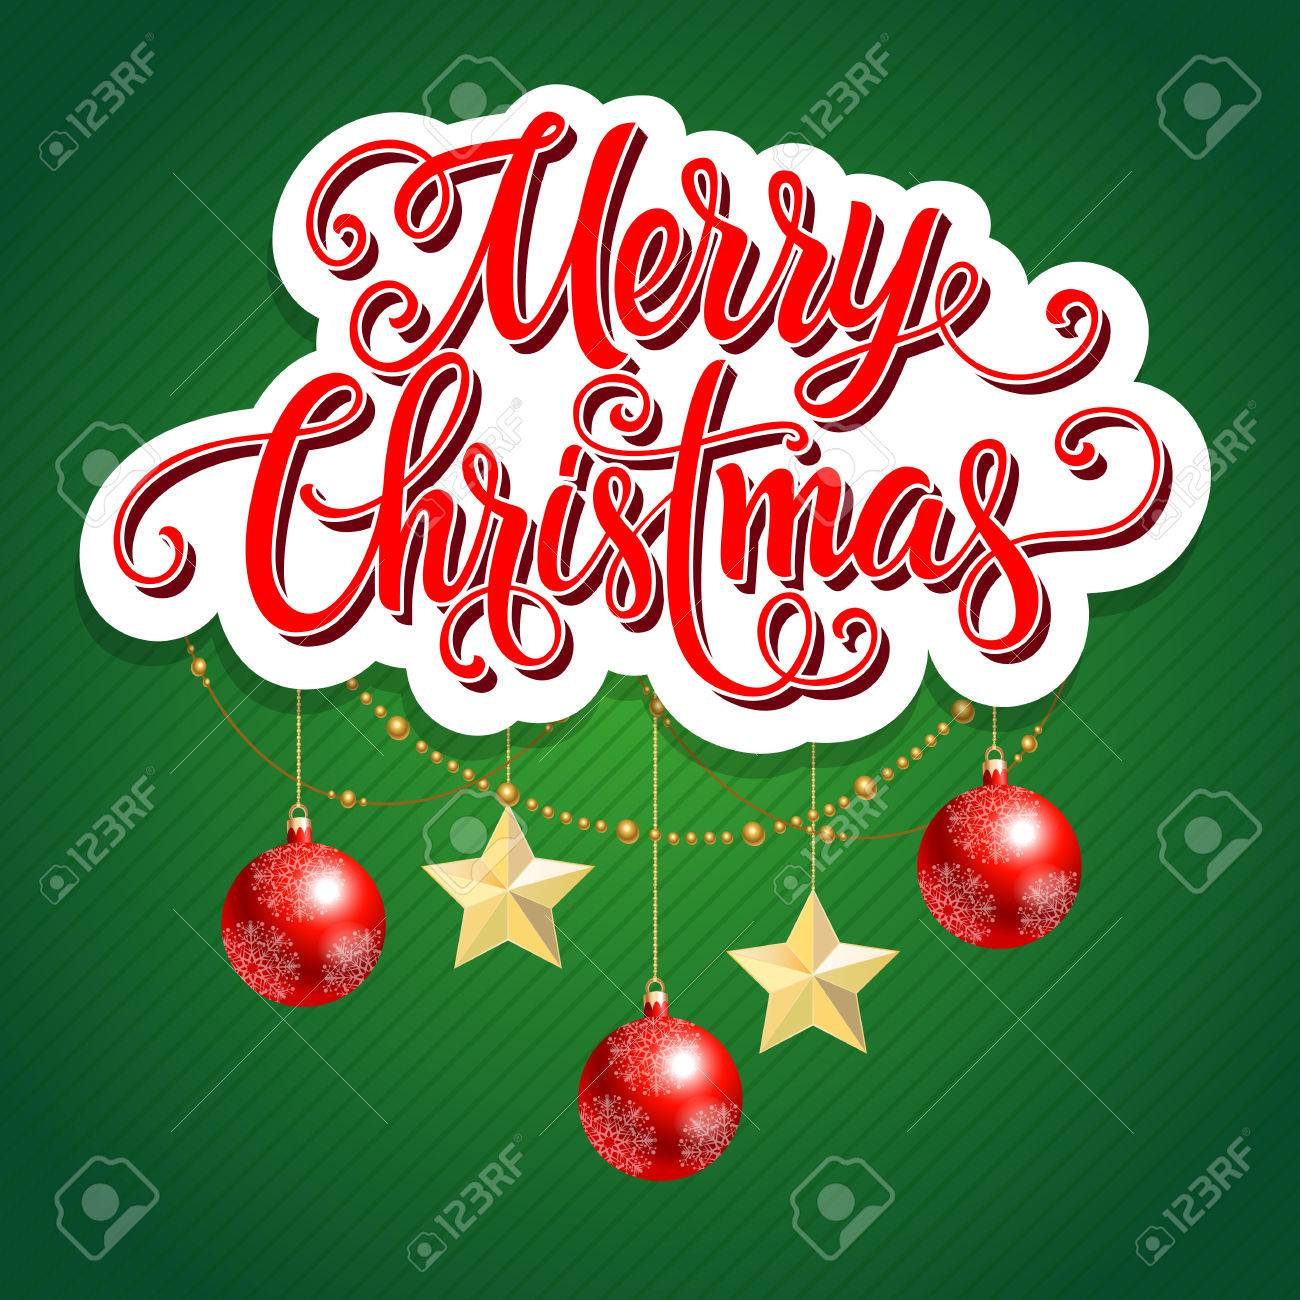 Merry Christmas Lettering Christmas Greeting Card With Balls